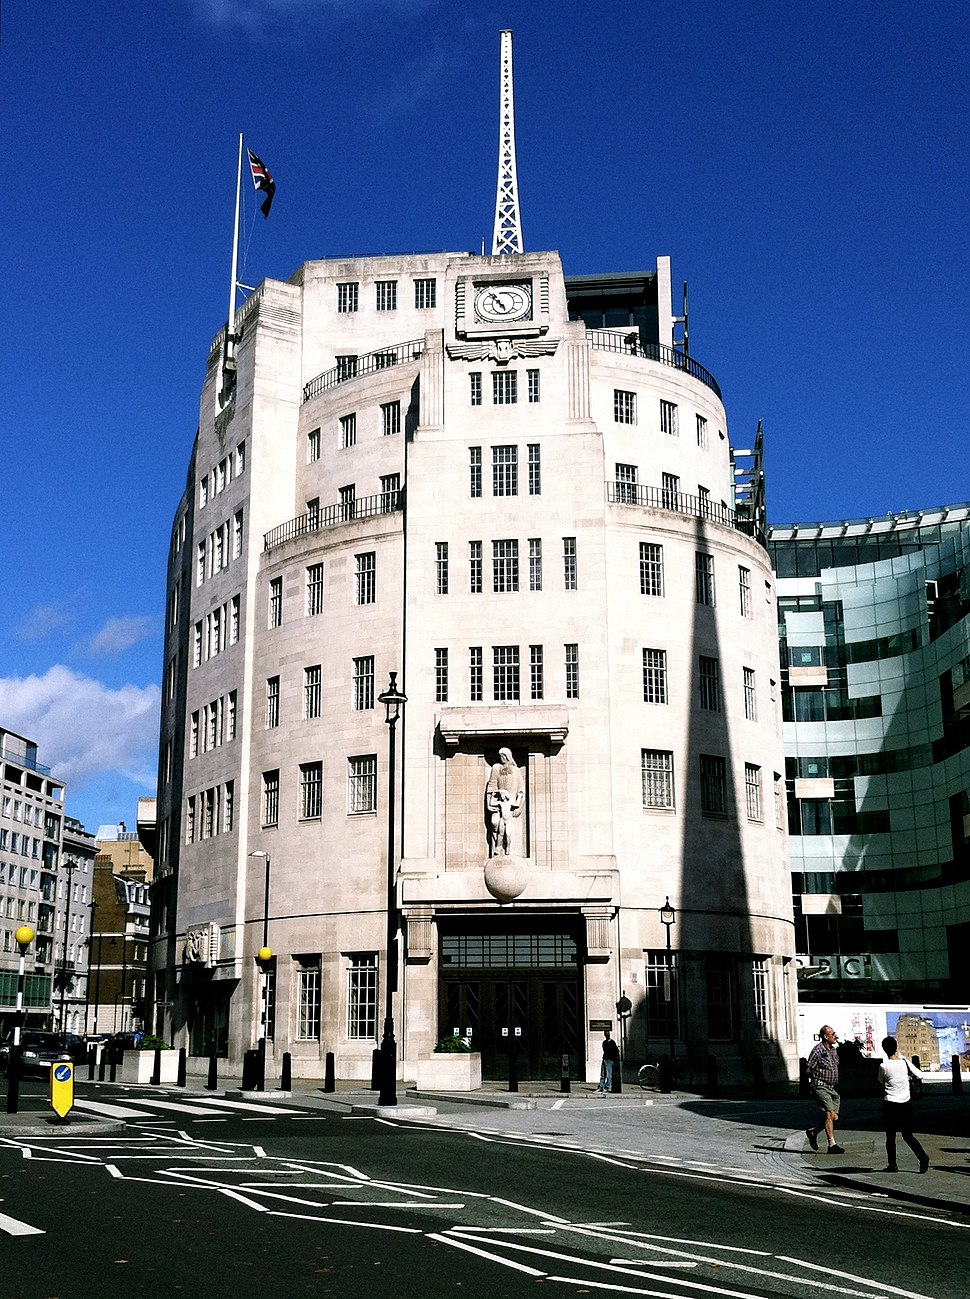 Broadcasting House and East Wing